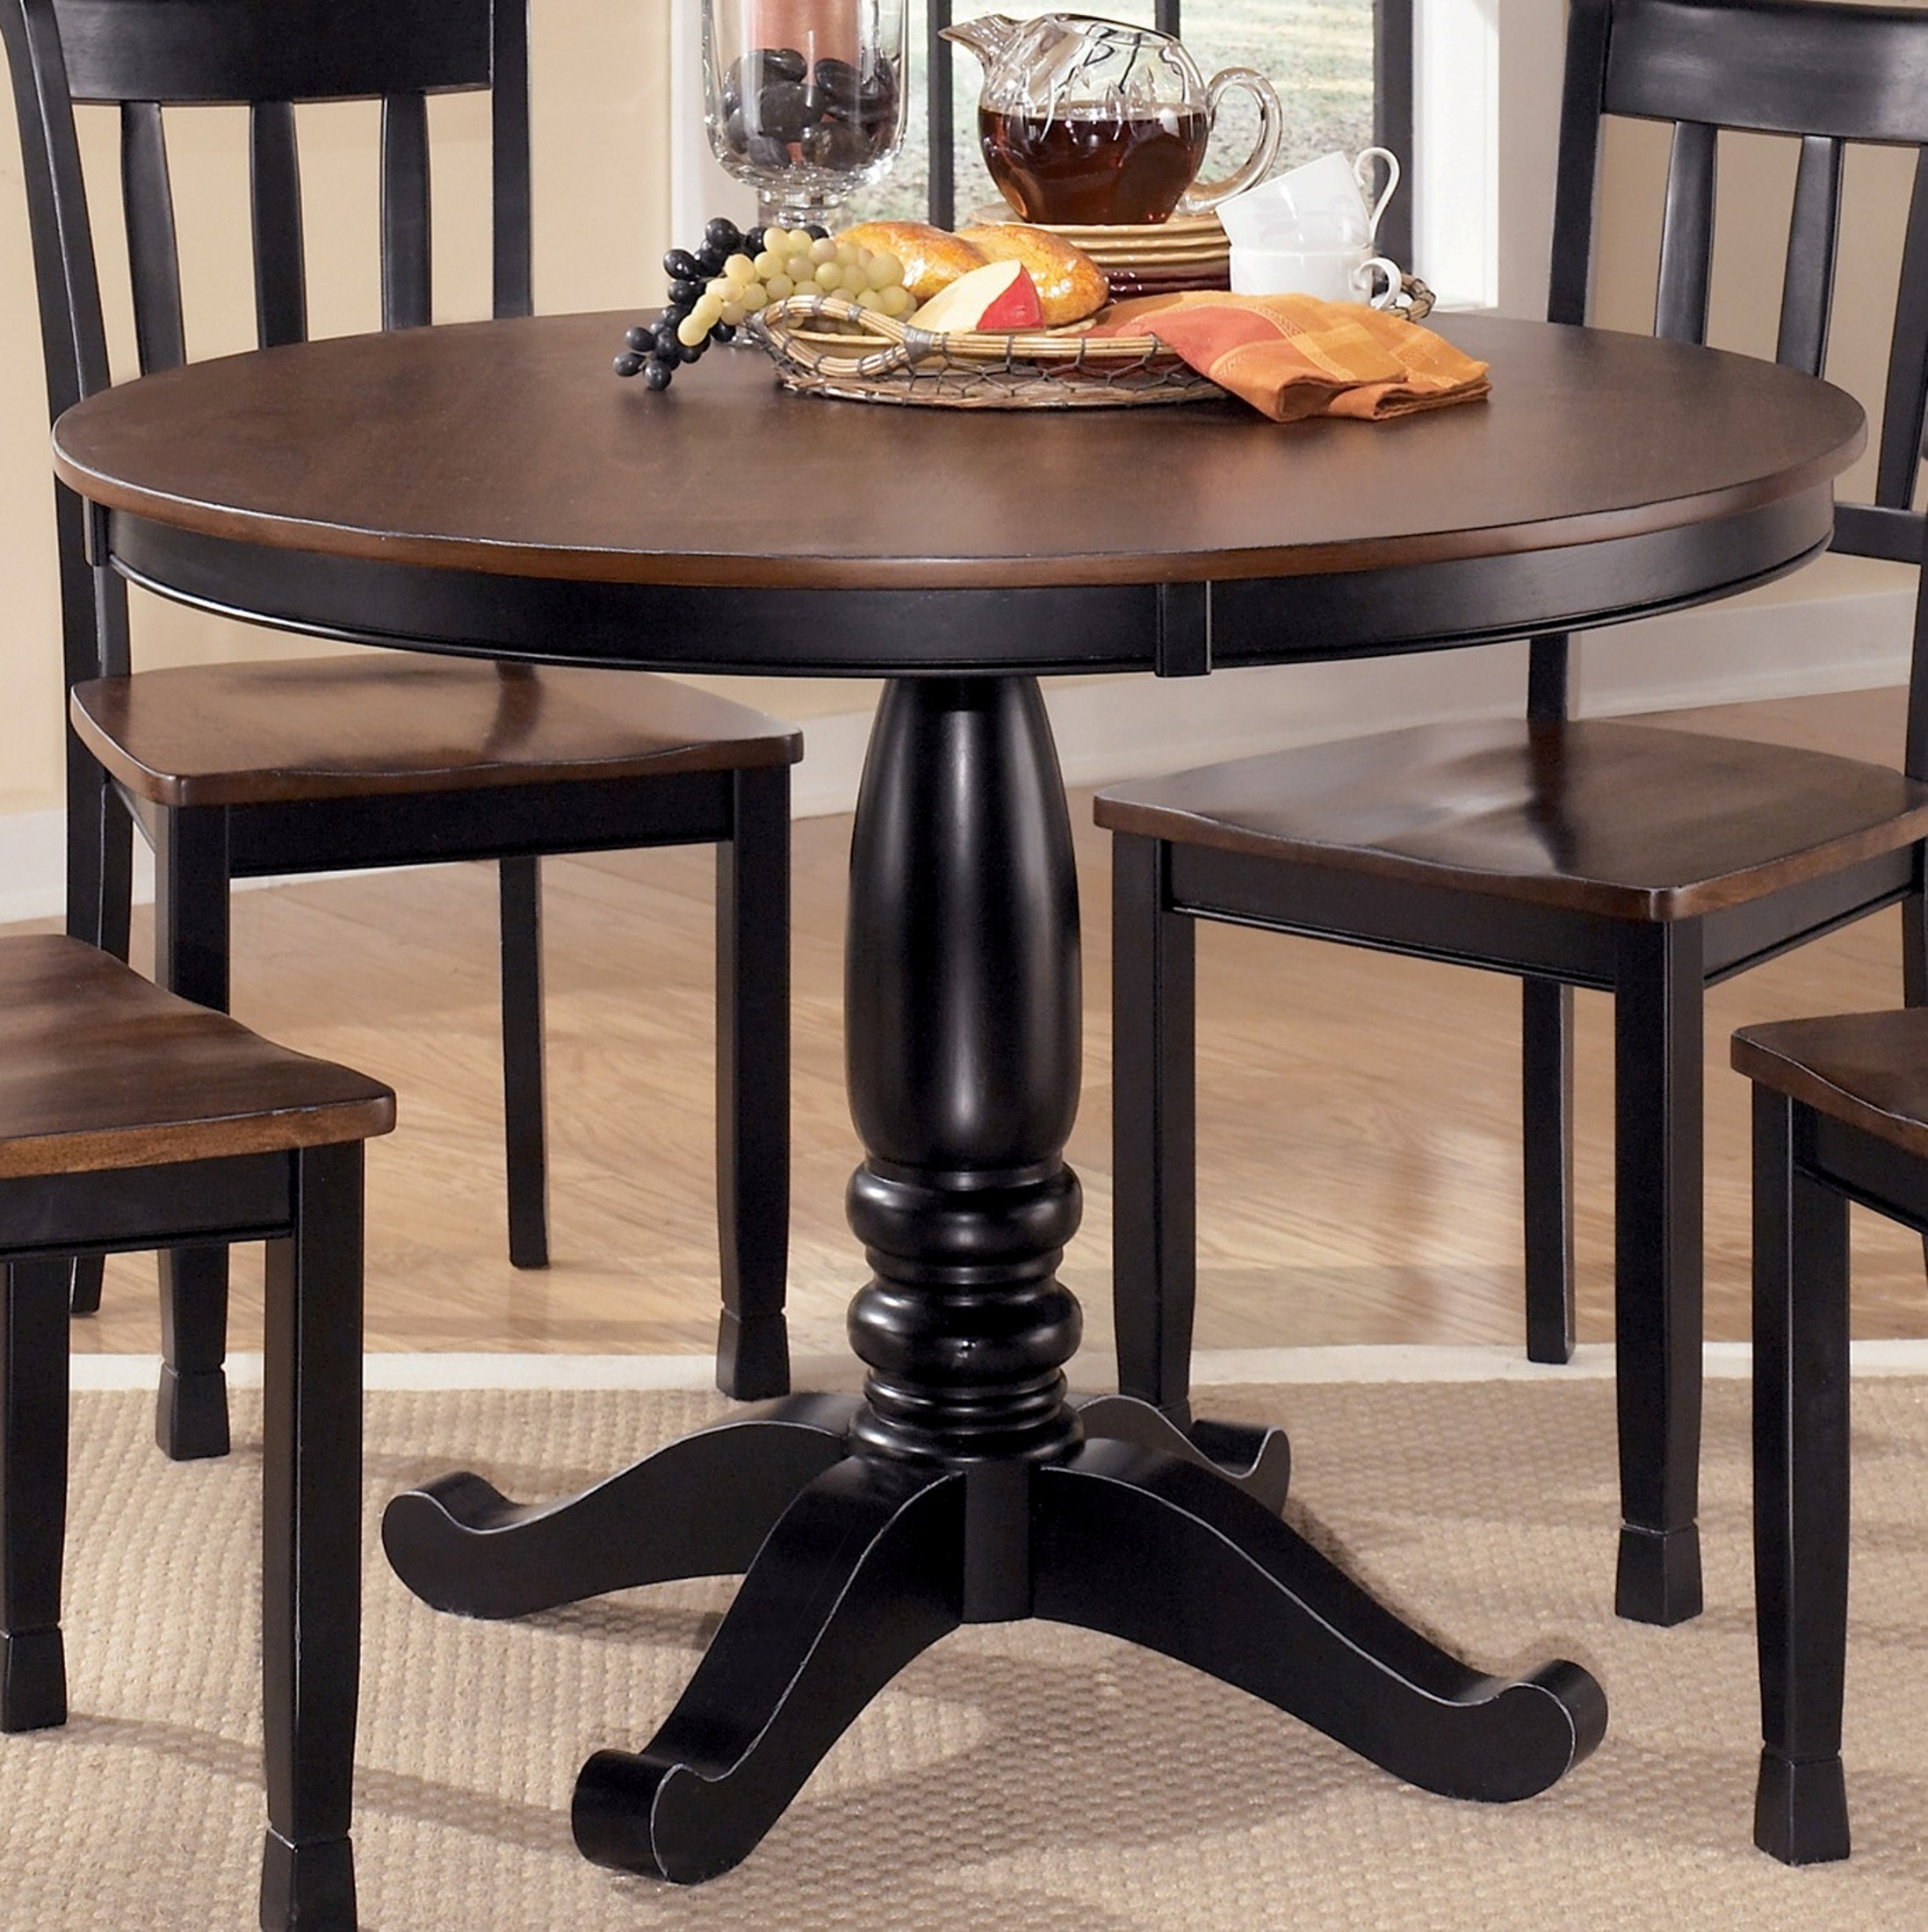 owingsville round dining room table from ashley d580 15b 15t coleman furniture. Black Bedroom Furniture Sets. Home Design Ideas